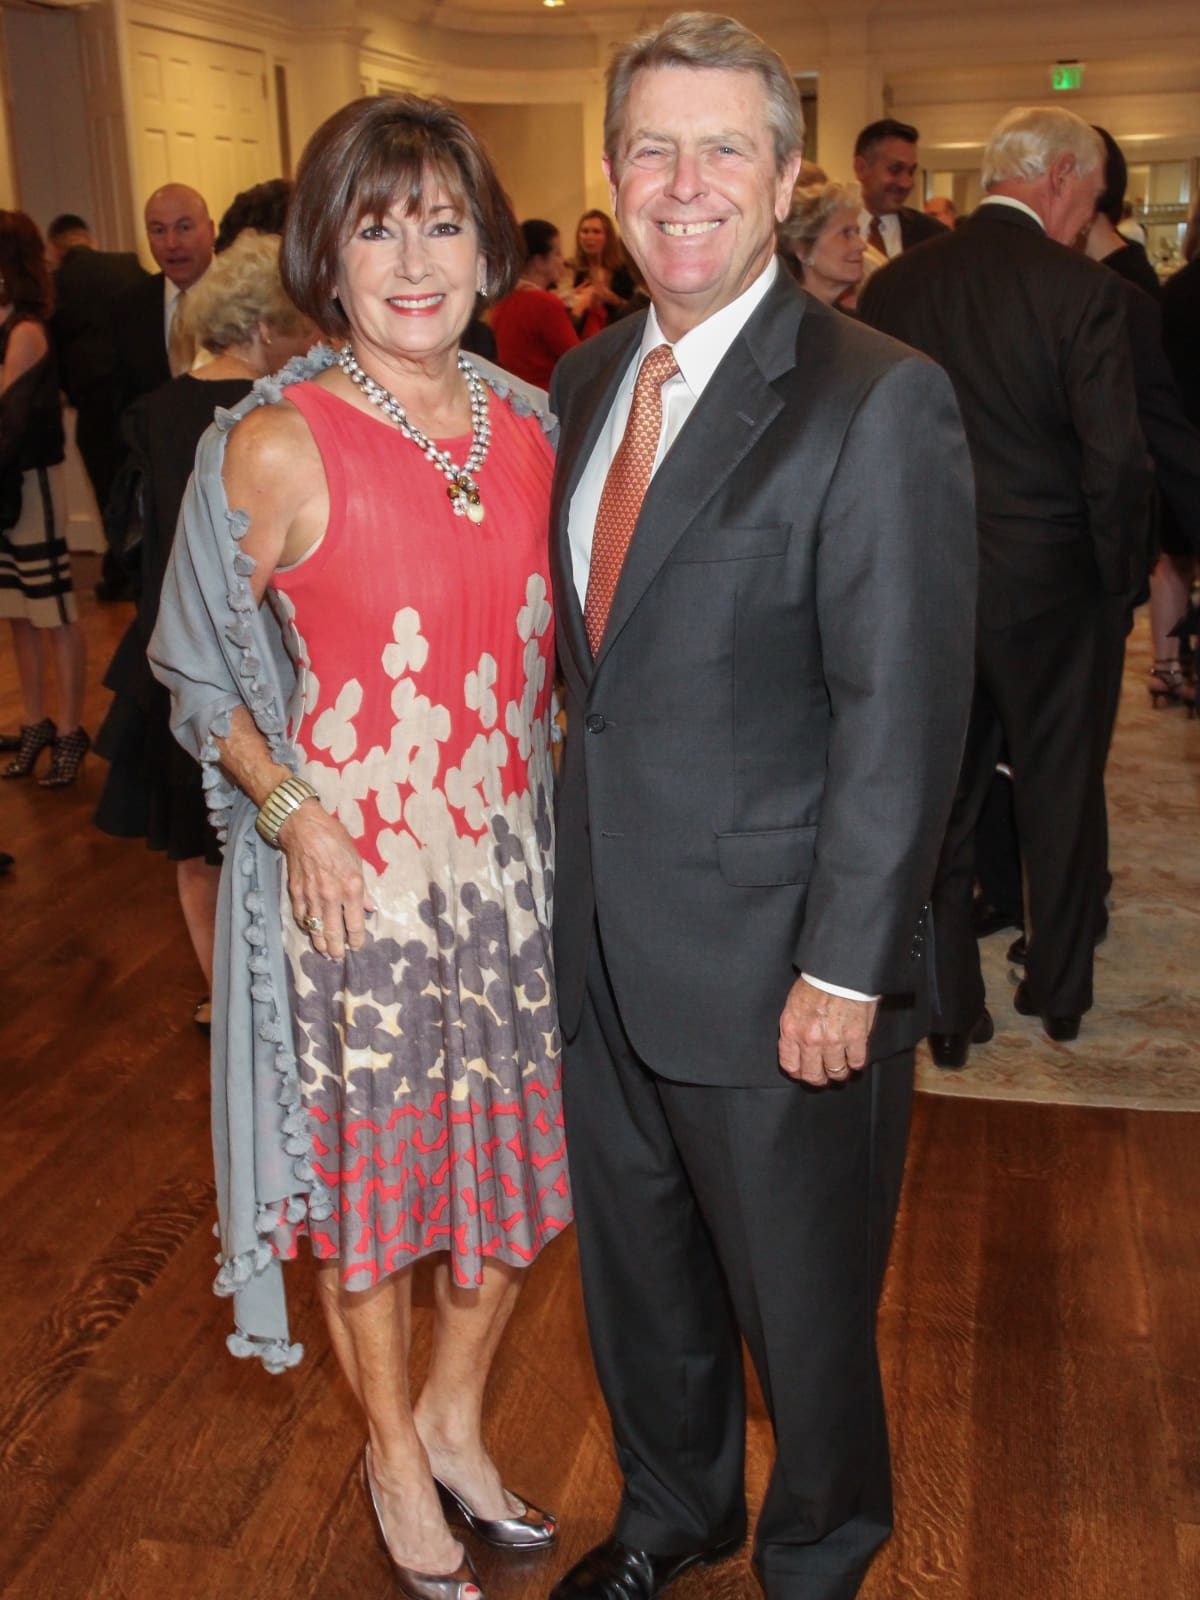 Jubilee of Caring/Cathy and Joe Cleary